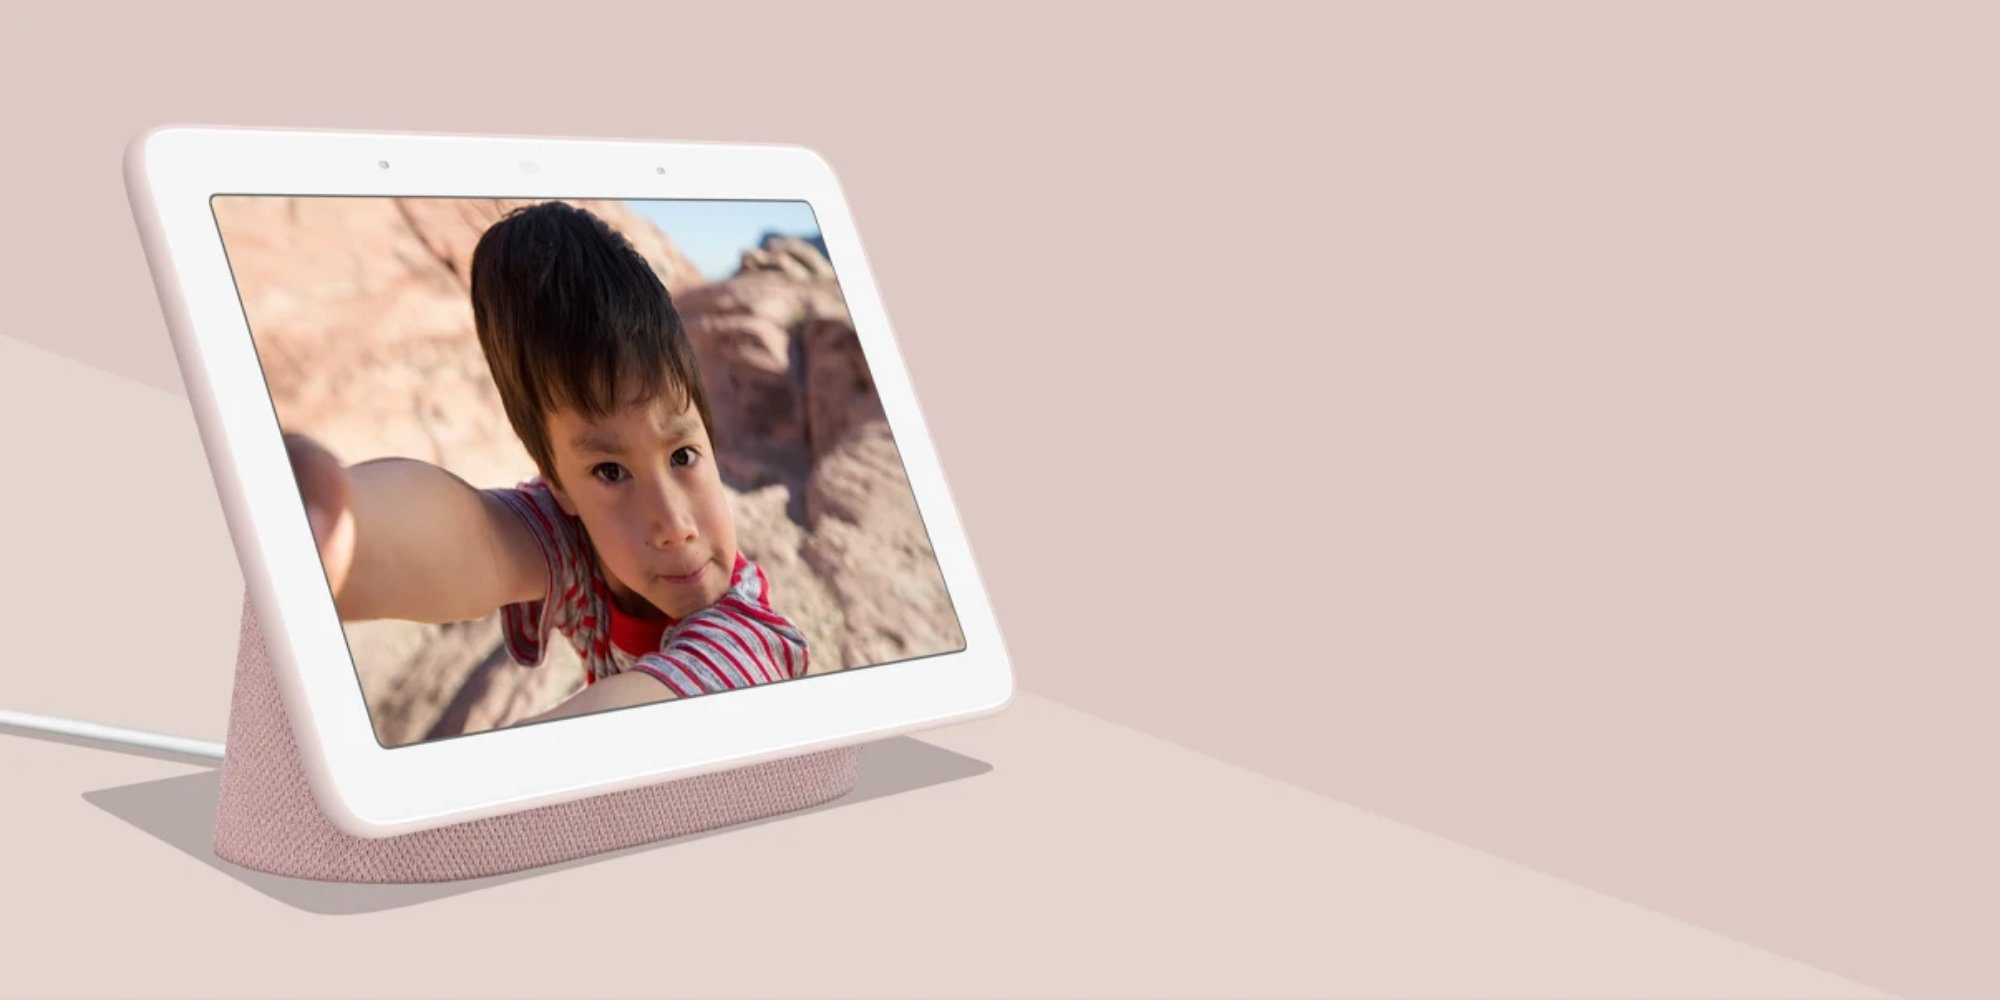 Google Home Hub deals, SanDisk Extreme storage, and Twelve South's PowerPic are in today's best offers